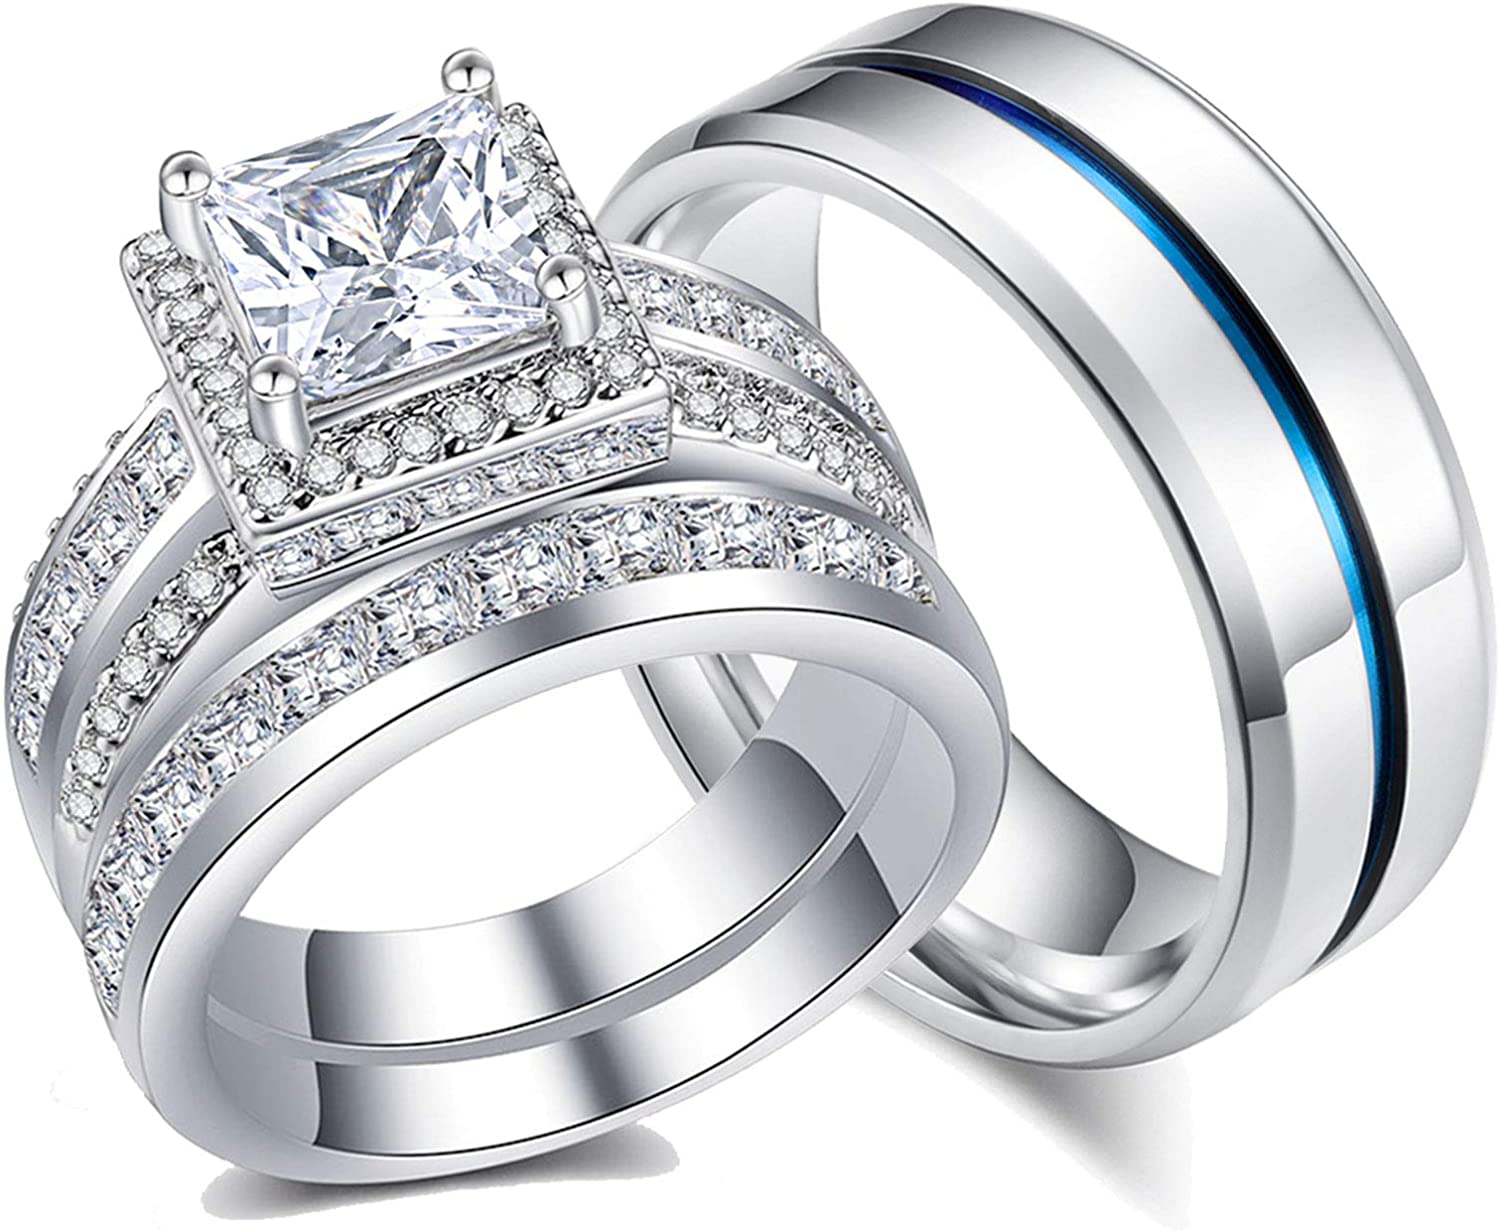 Ahloe Jewelry Princess Wedding Ring Sets for Him and Her Women Men Titanium Stainless Steel Bands 3.0Ct Cz 18k Gold Couple Rings